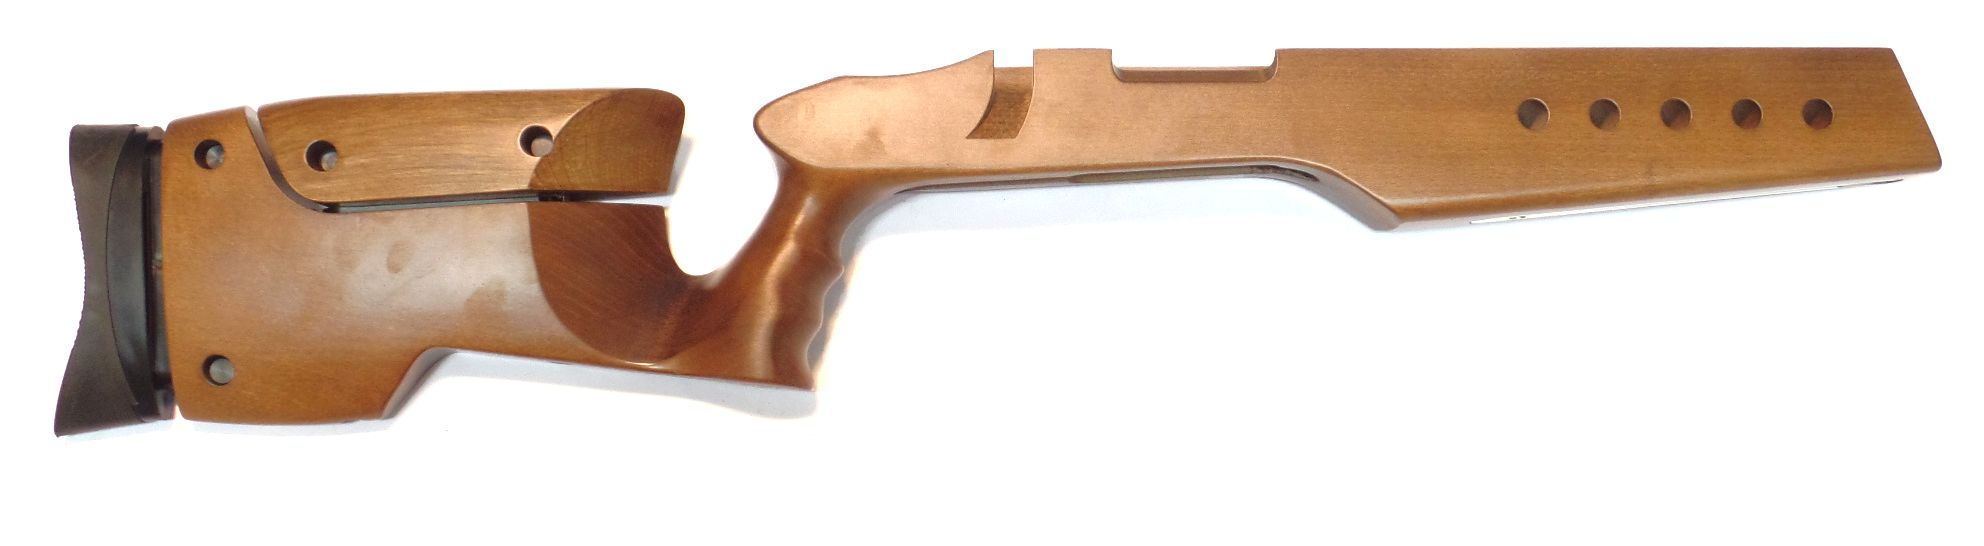 Crosse Ergonomique TARGET pour Remington 700